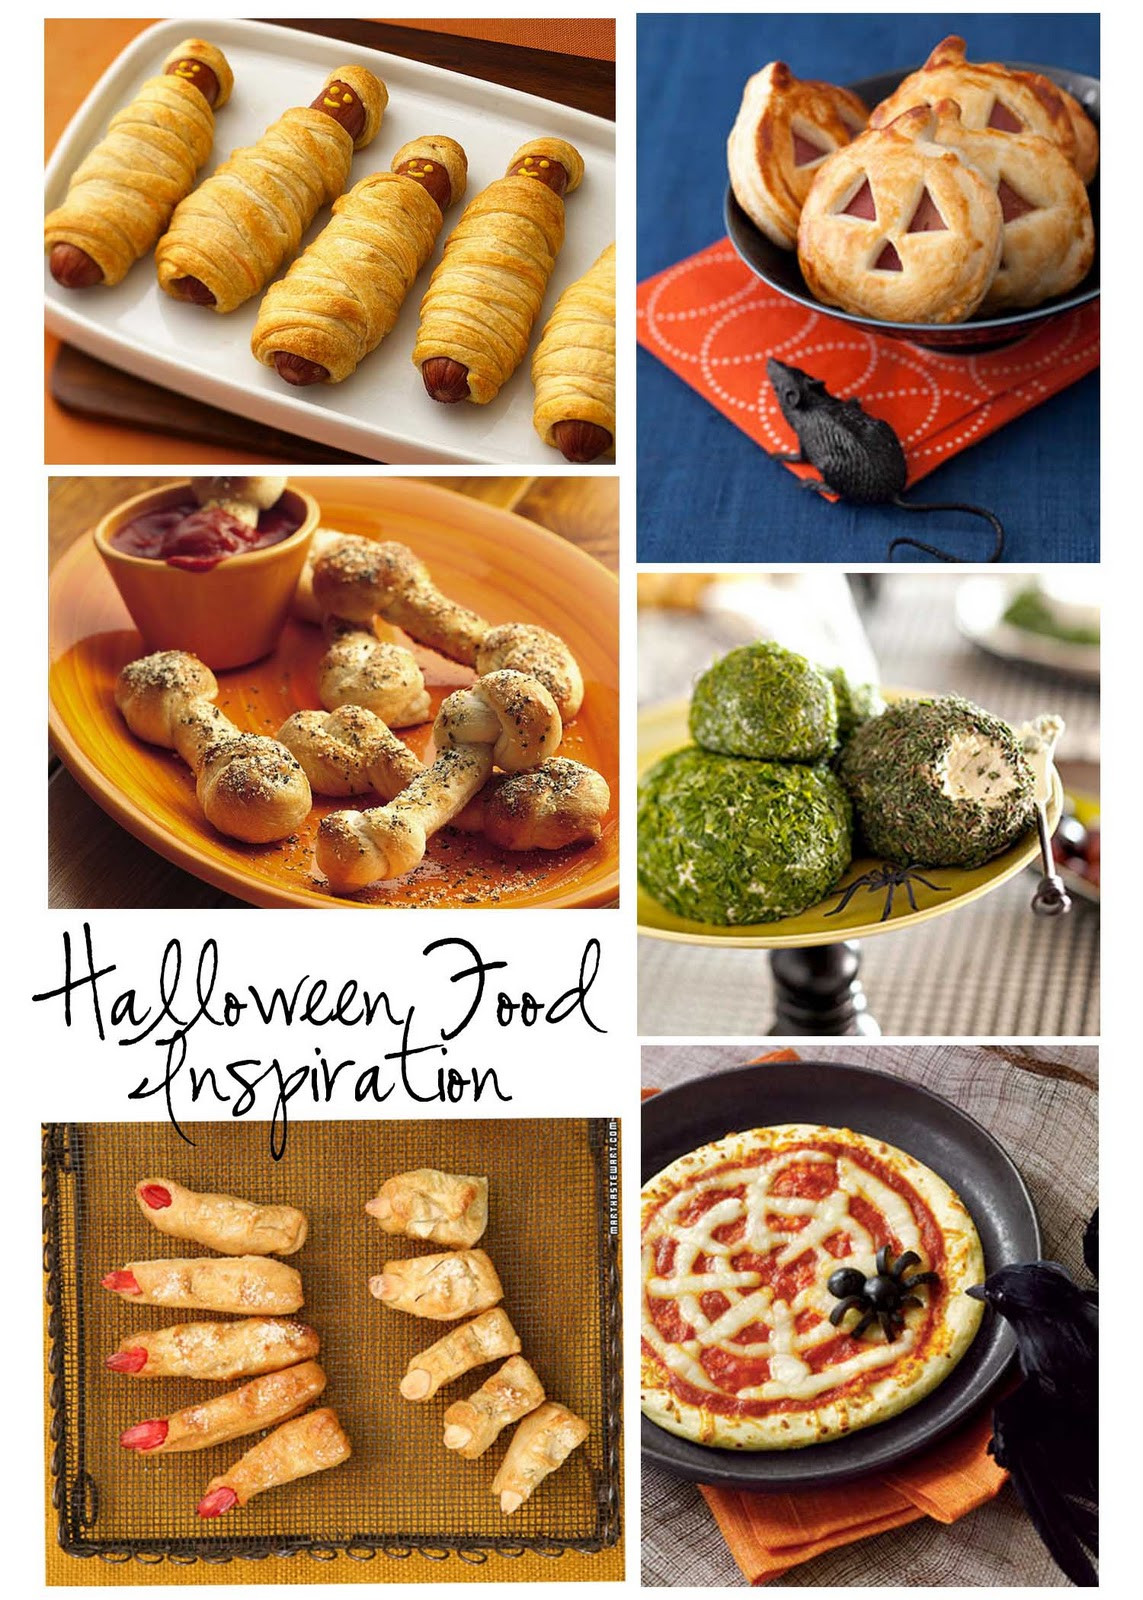 Halloween Party Snack Ideas  Room to Inspire Spooky Food Ideas